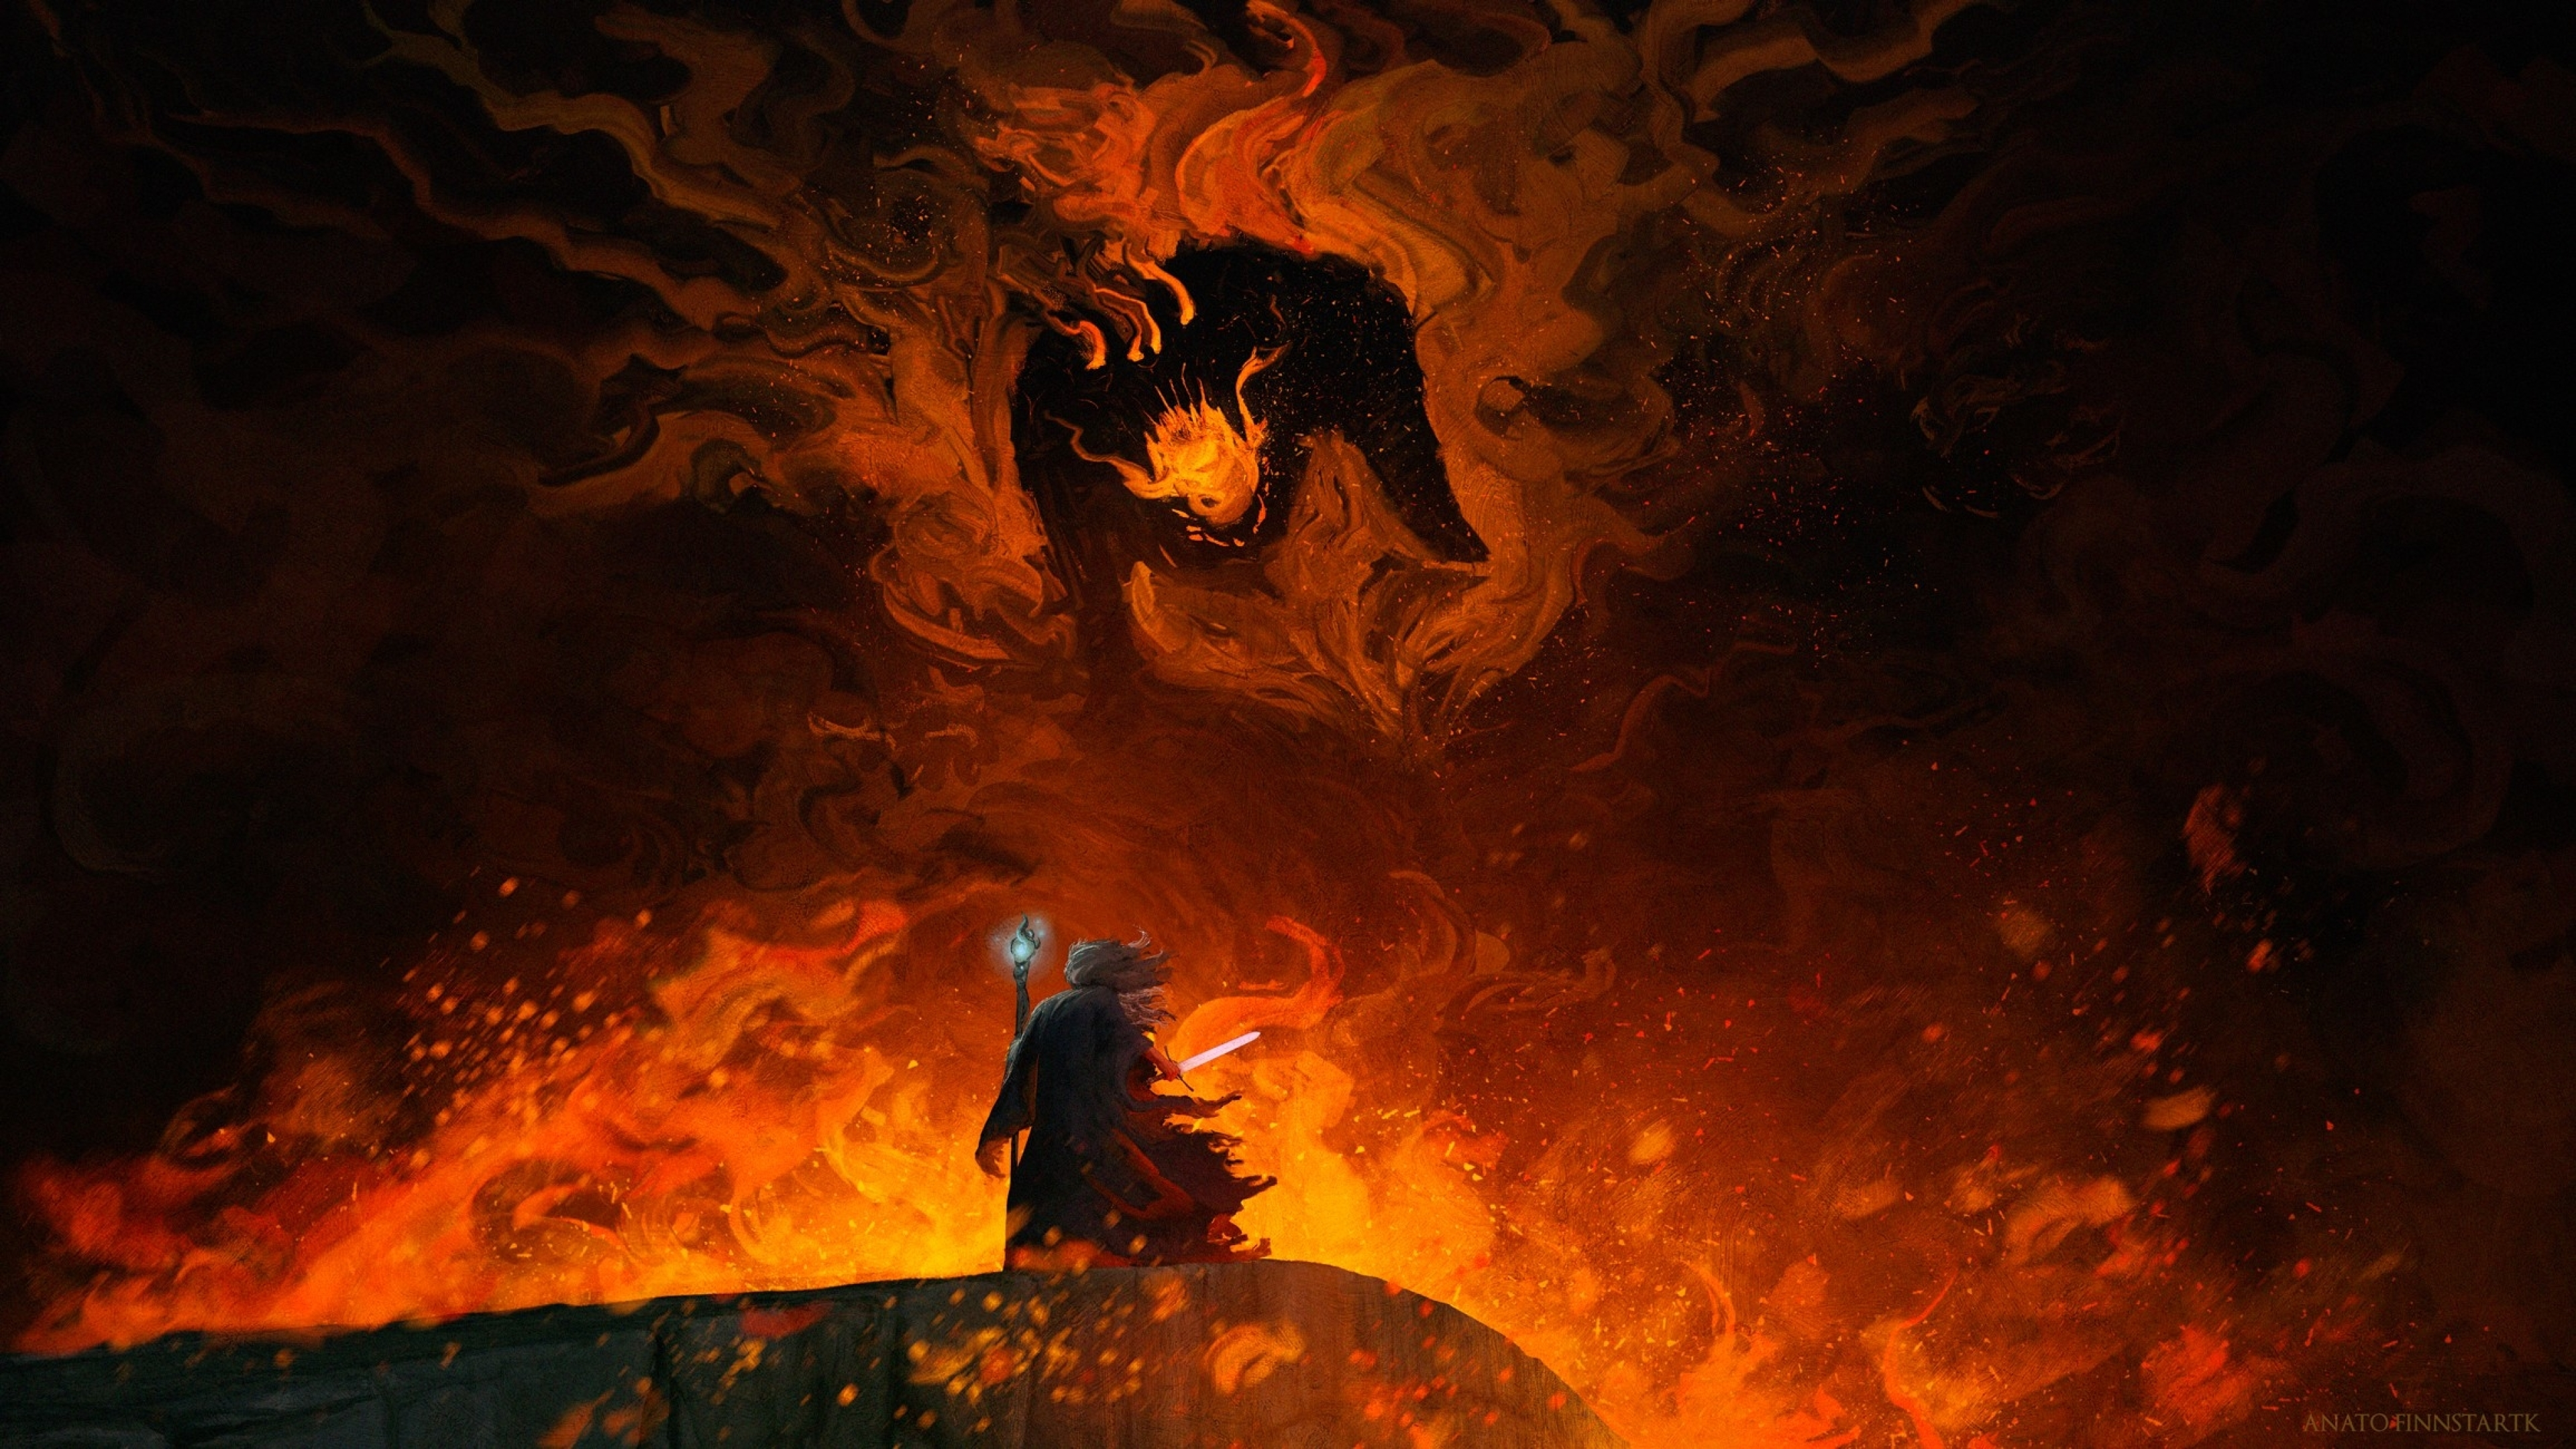 General 3840x2160 Gandalf Balrog The Lord of the Rings fantasy art